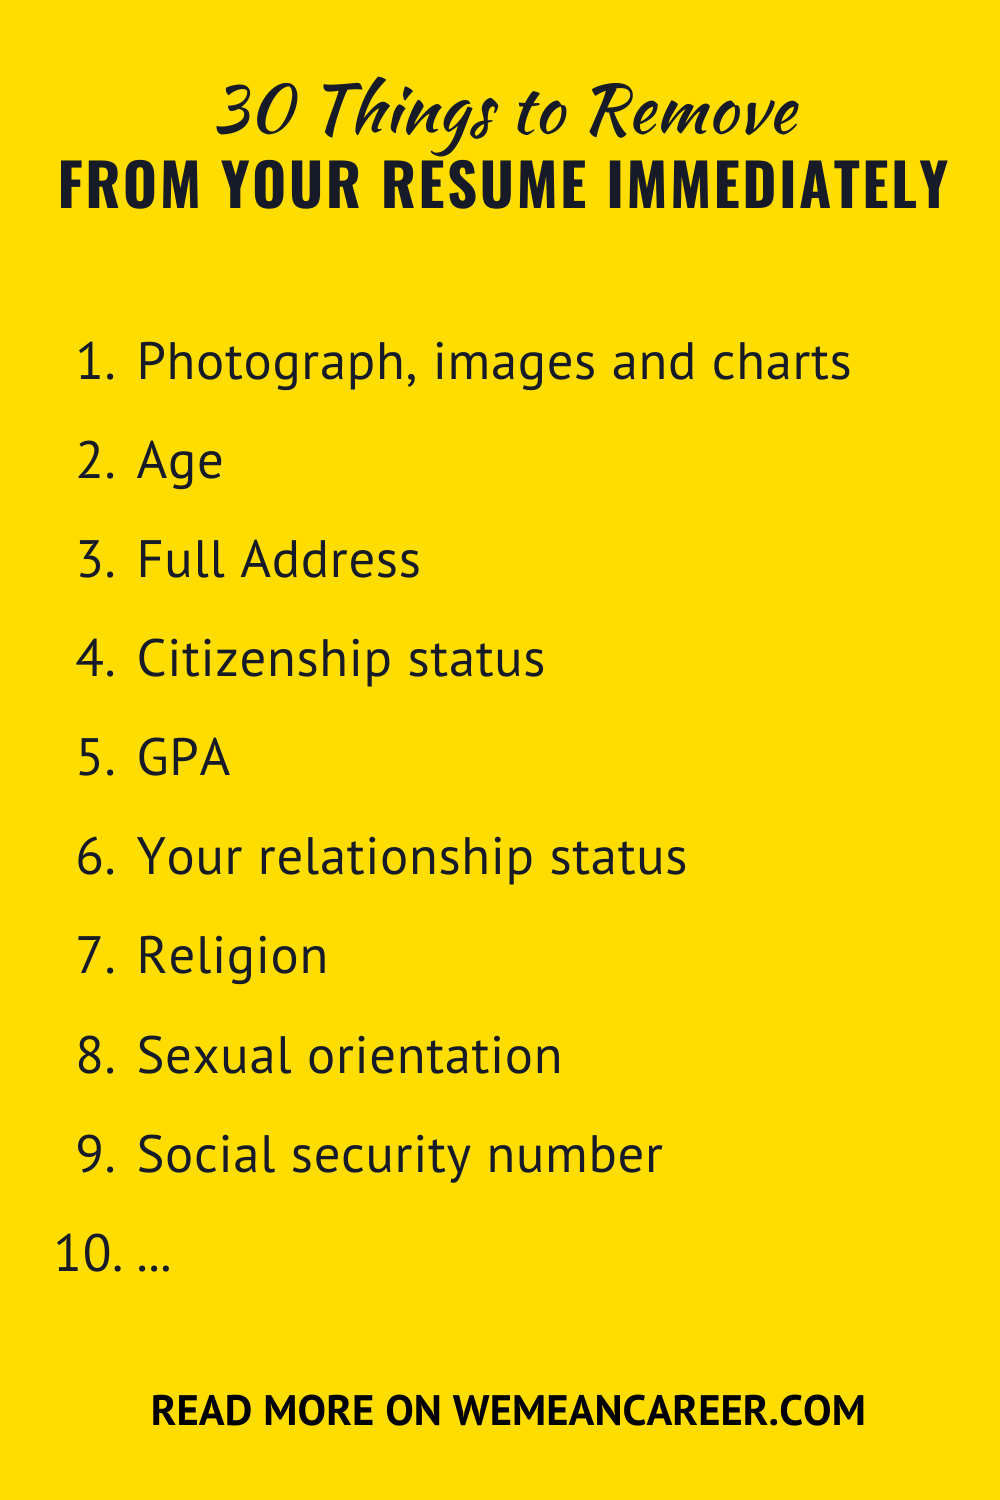 30 Things To Remove From Your Resume Immediately in 2020